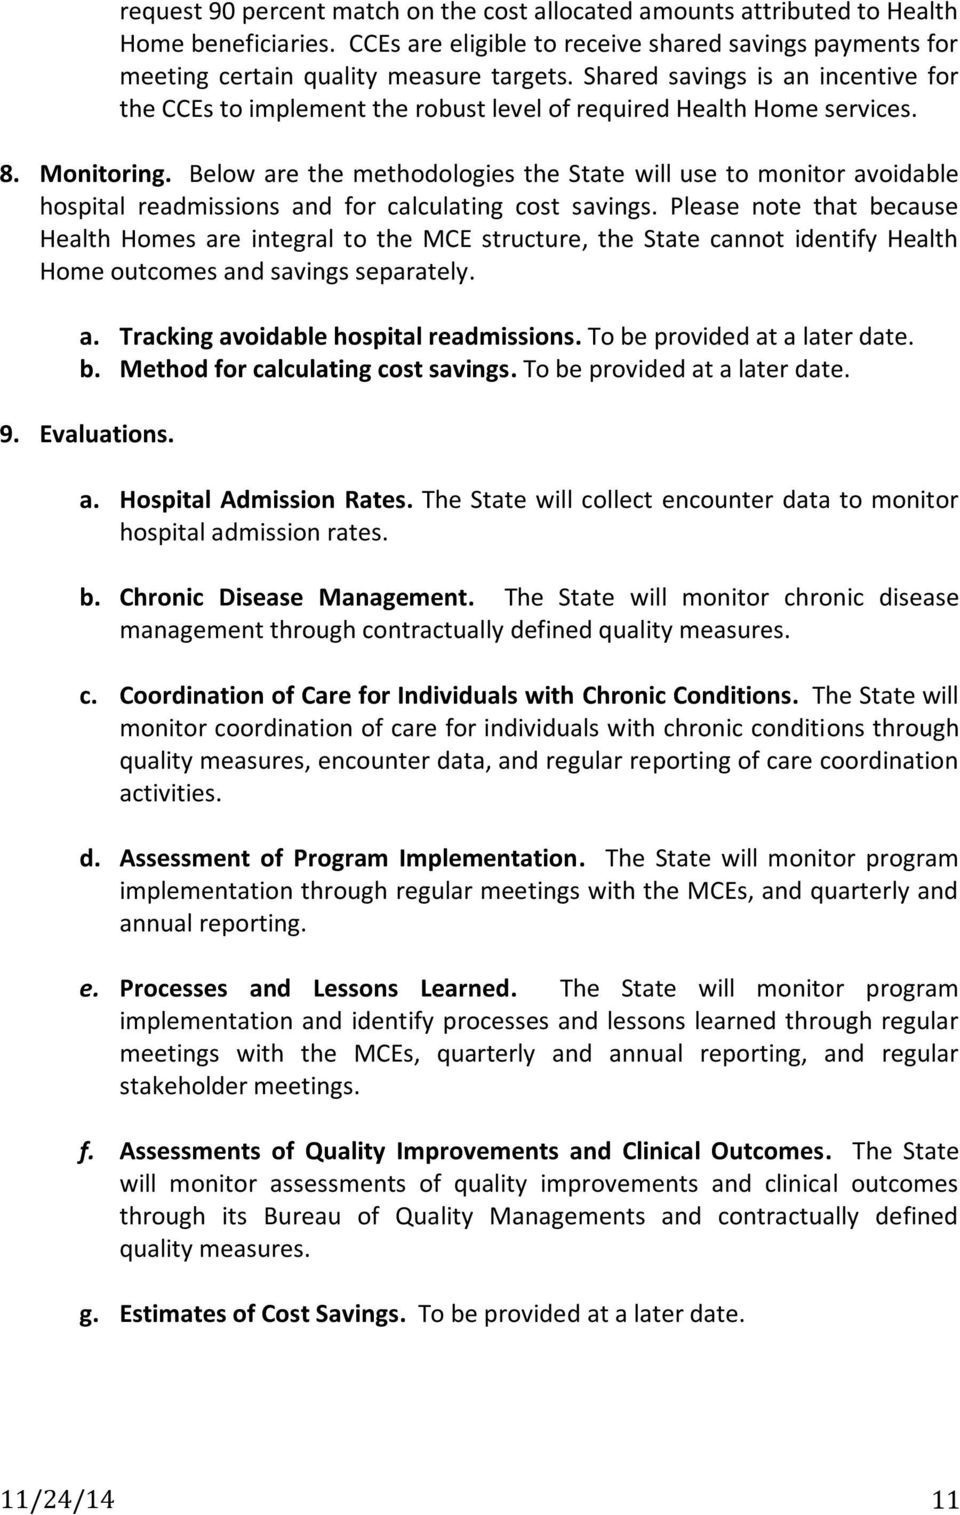 Below are the methodologies the State will use to monitor avoidable hospital readmissions and for calculating cost savings.